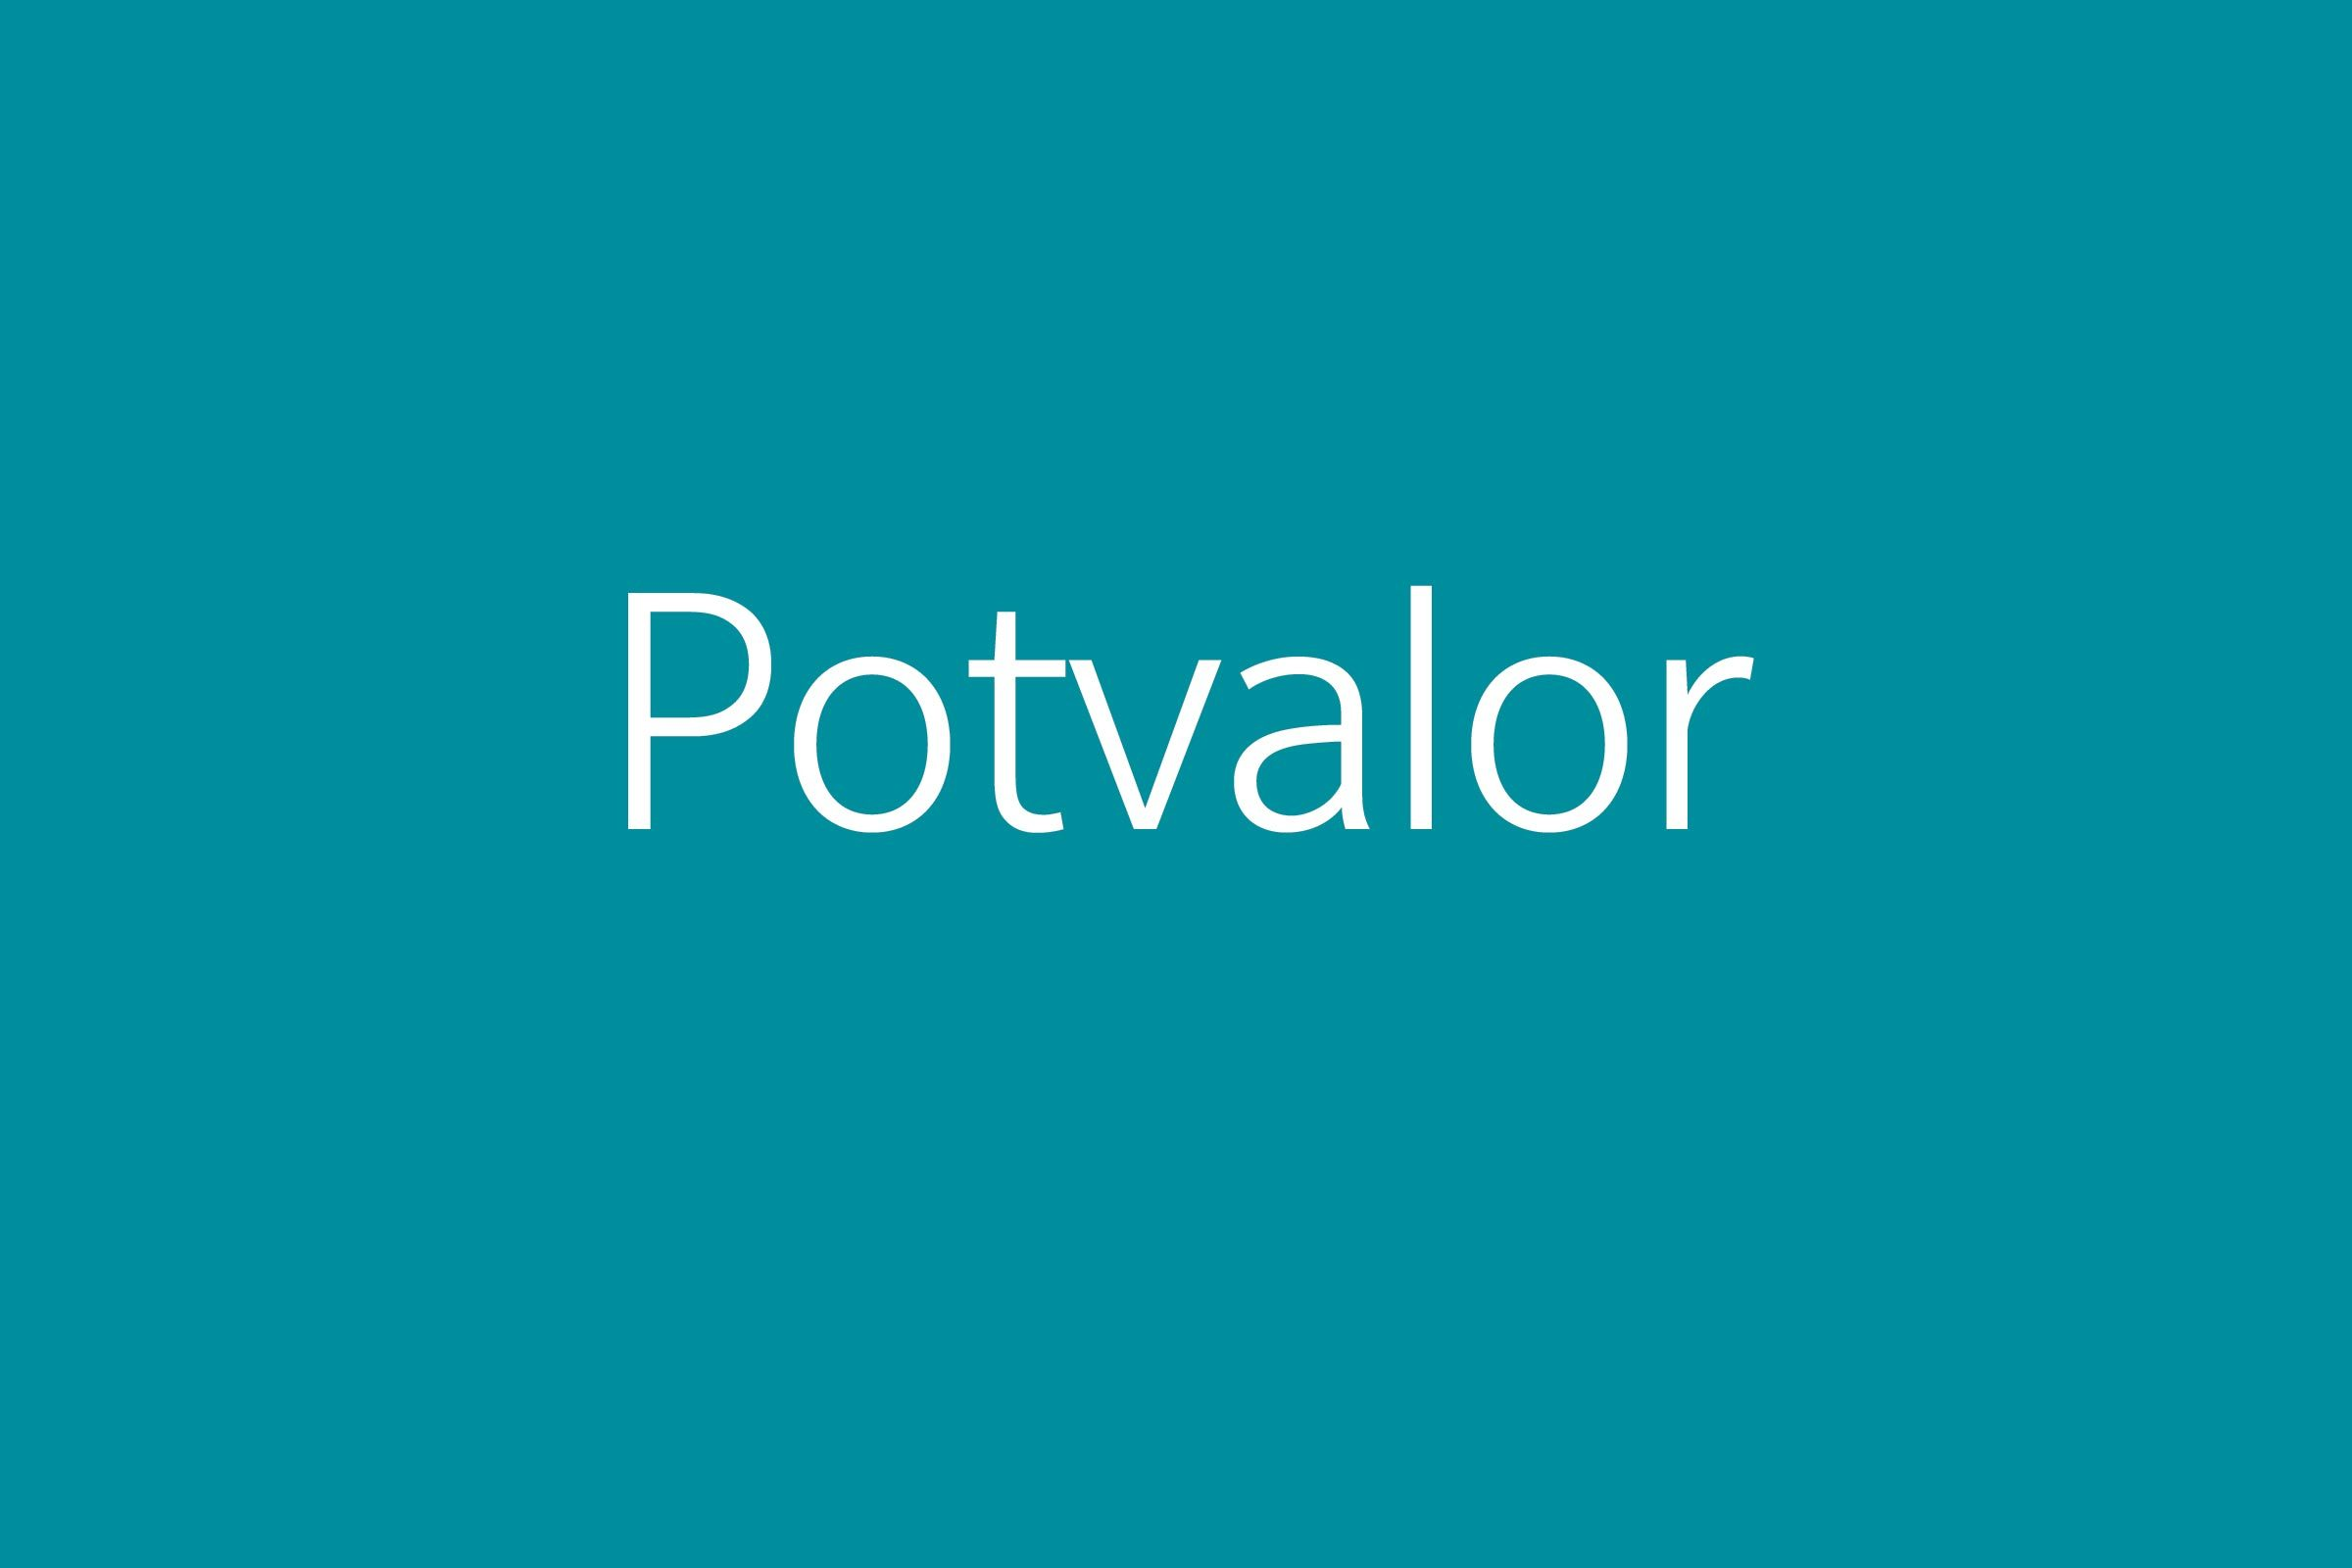 potvalor funny word funny words to say